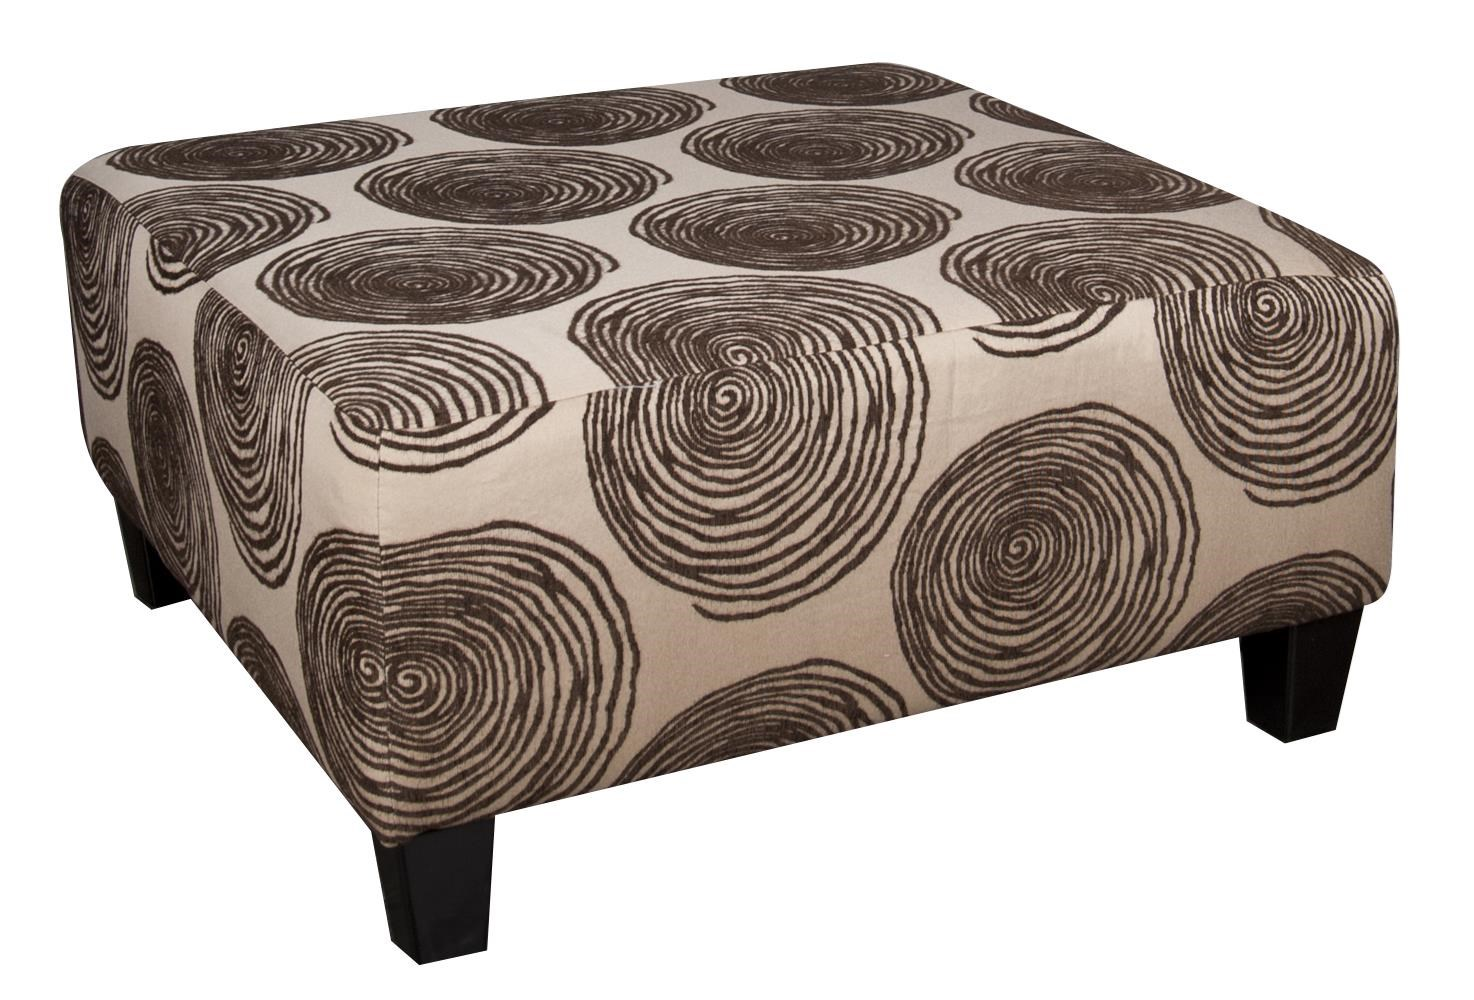 Morris Home Furnishings Agustus Agustus Ottoman - Item Number: 662383809